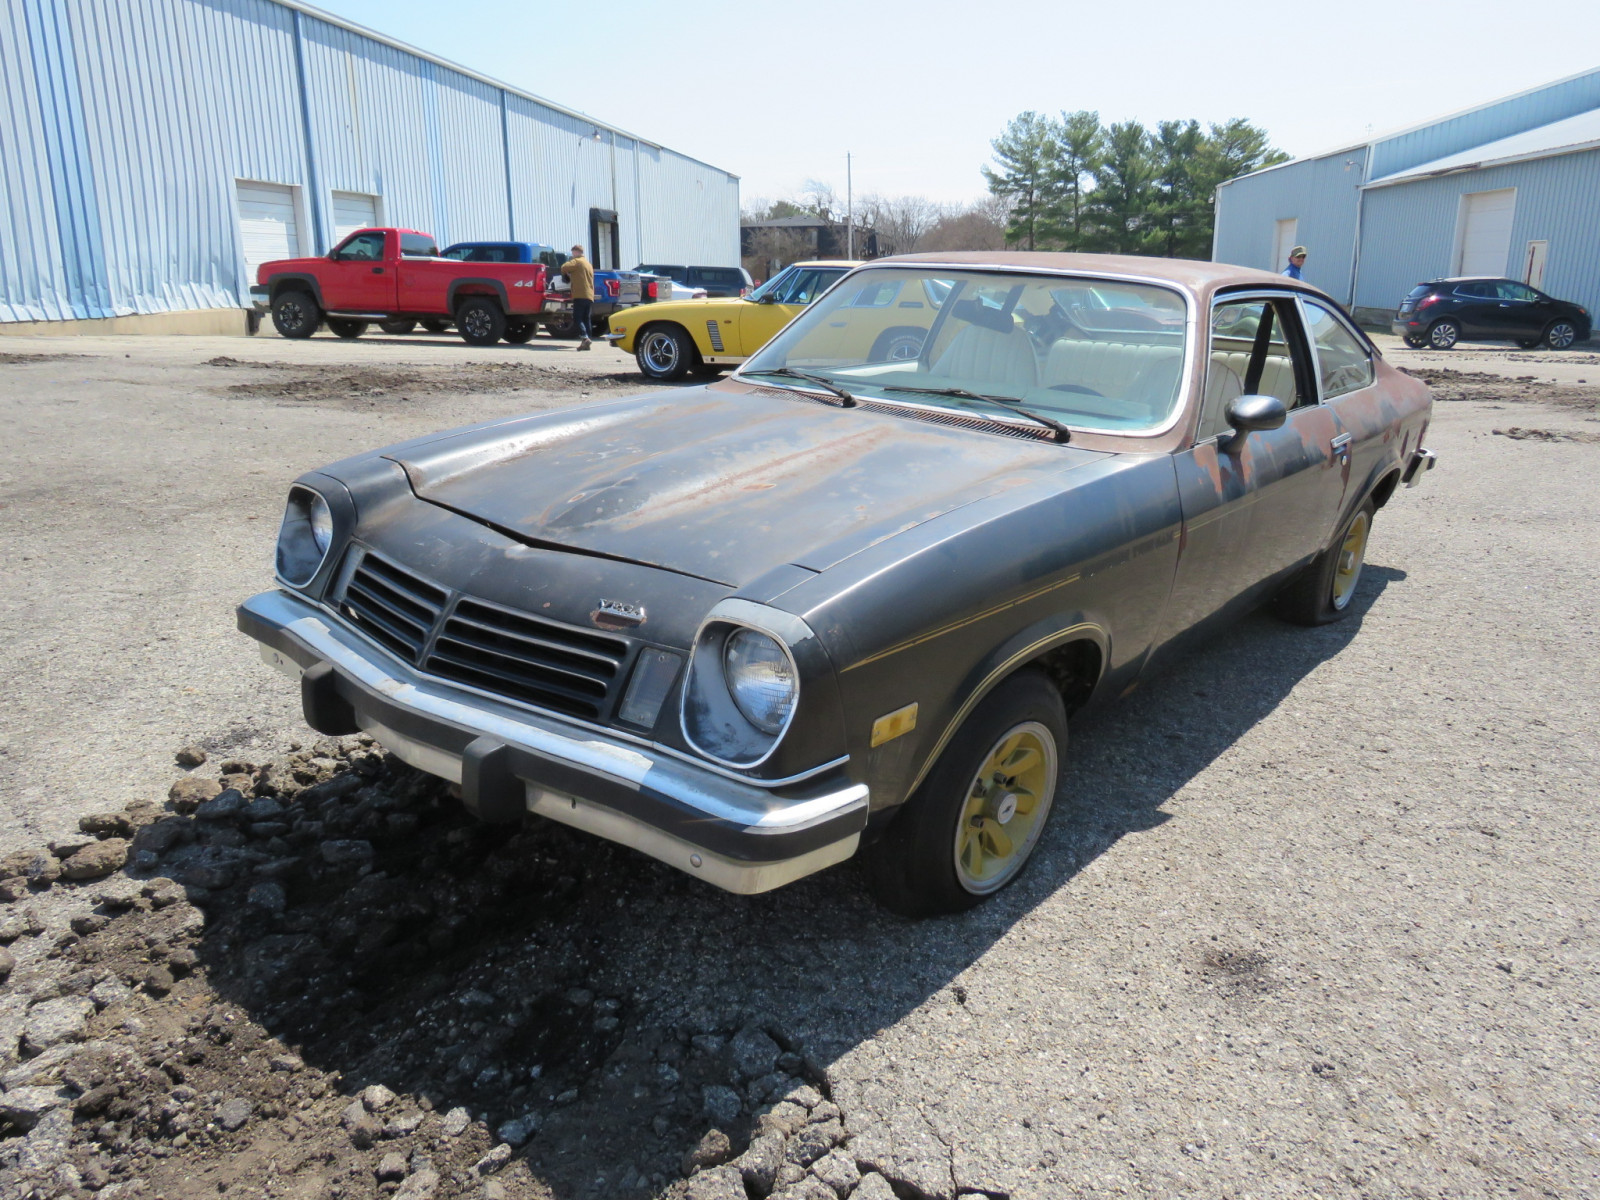 Rare 1975 Chevrolet Cosworth Vega Coupe - Image 1